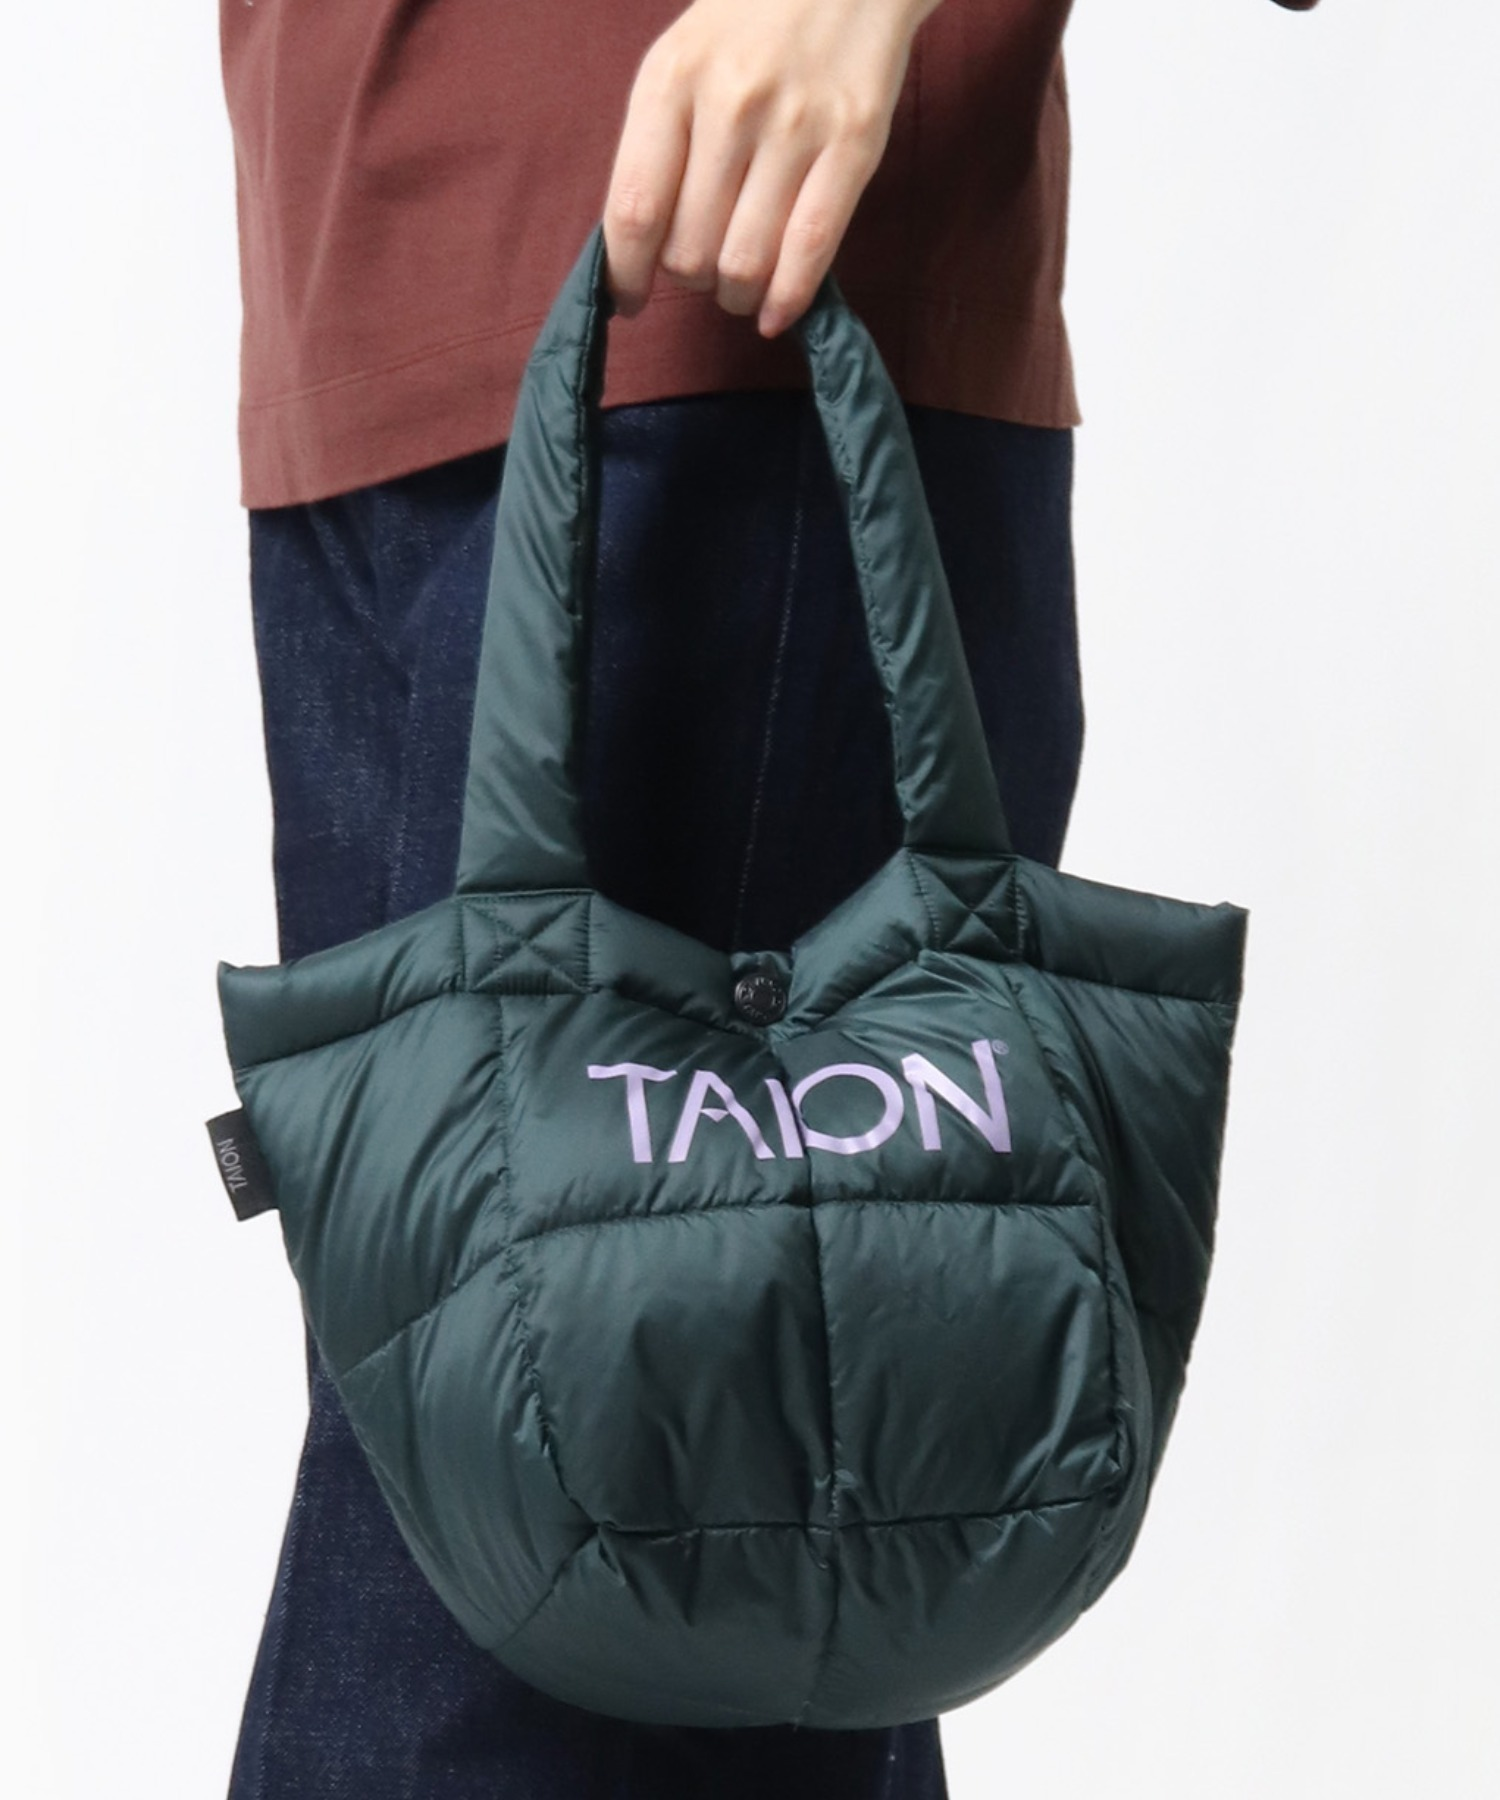 【 TAION / タイオン 】ダウンランチトートバッグ DON TAIONTOTE2S